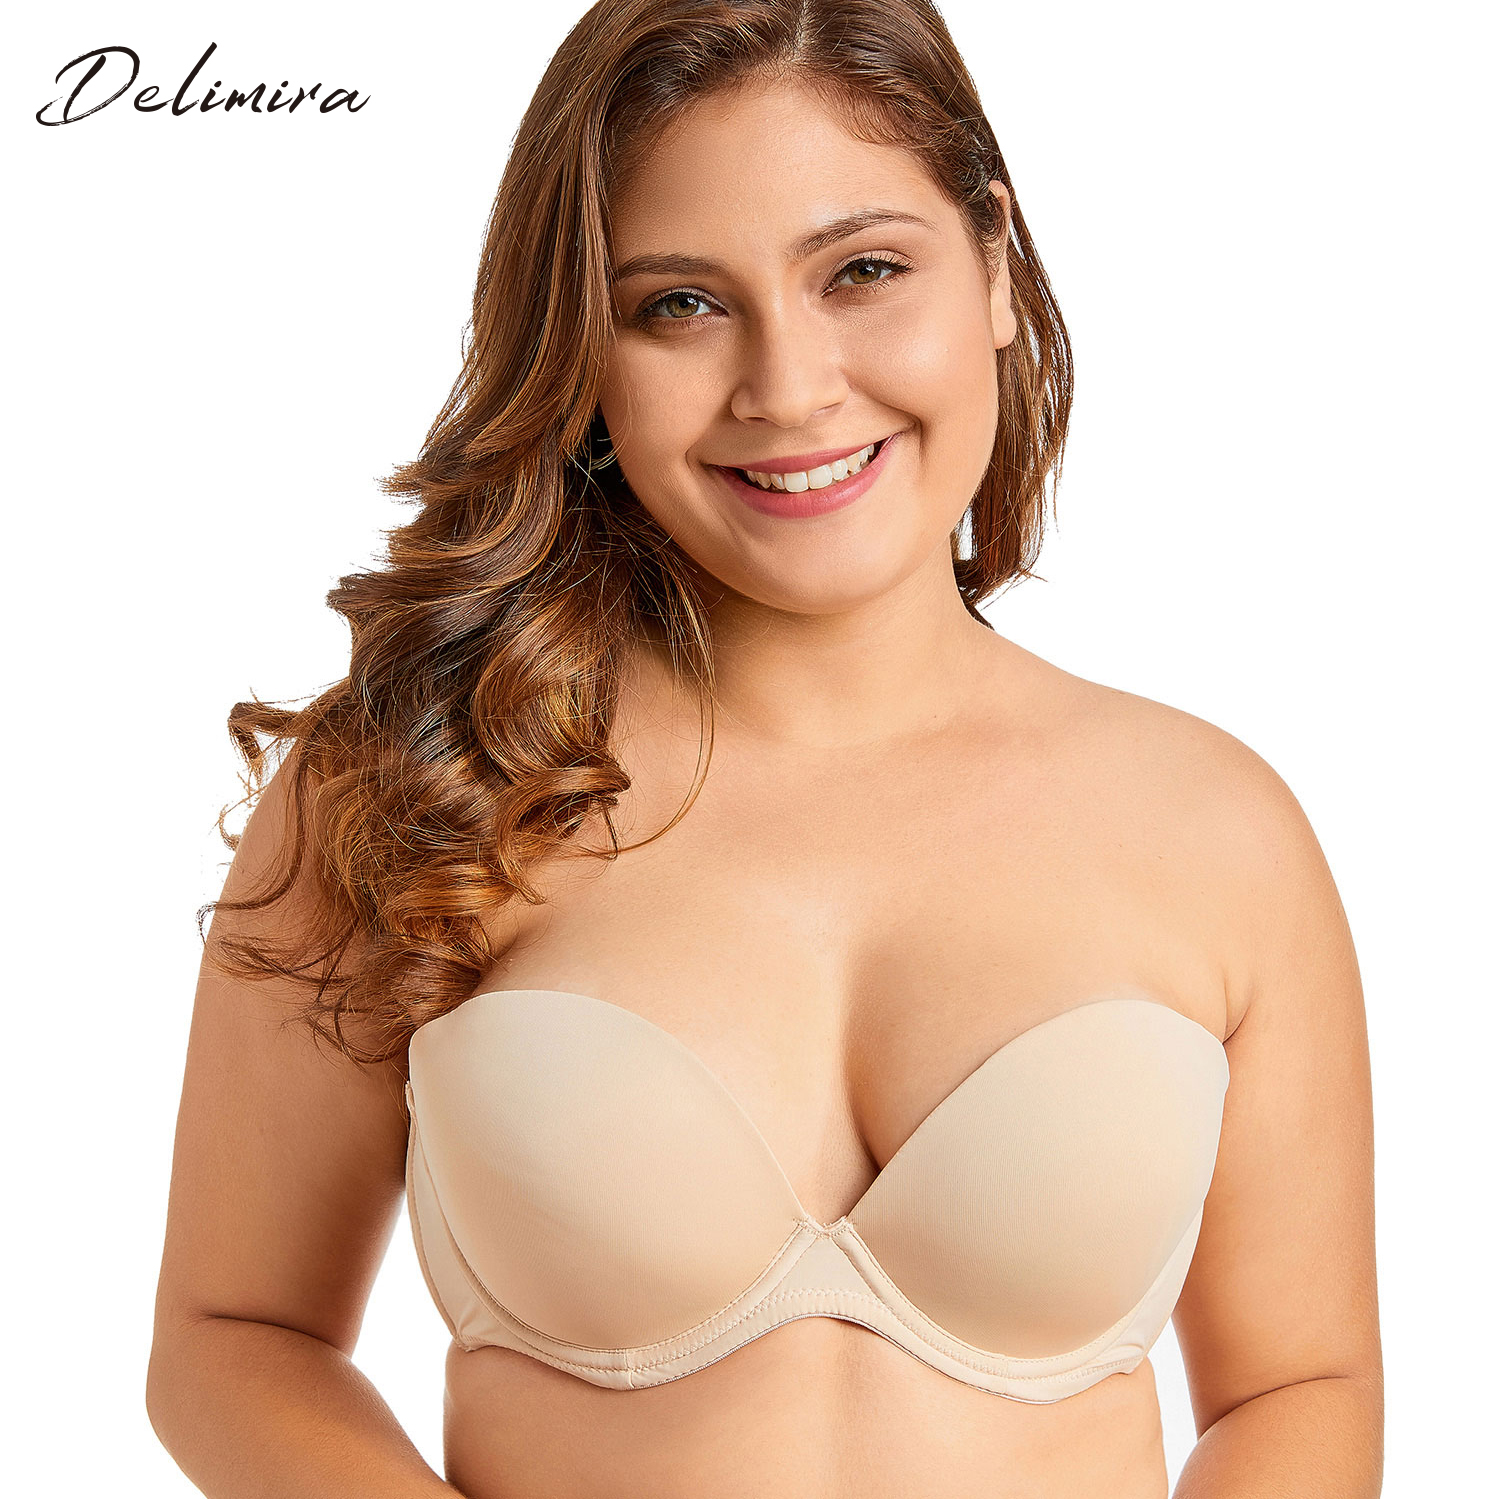 8471606c51b Delimira Women s Comfort Front Closure Non-padded X-back Underwire Plus  Size Bra